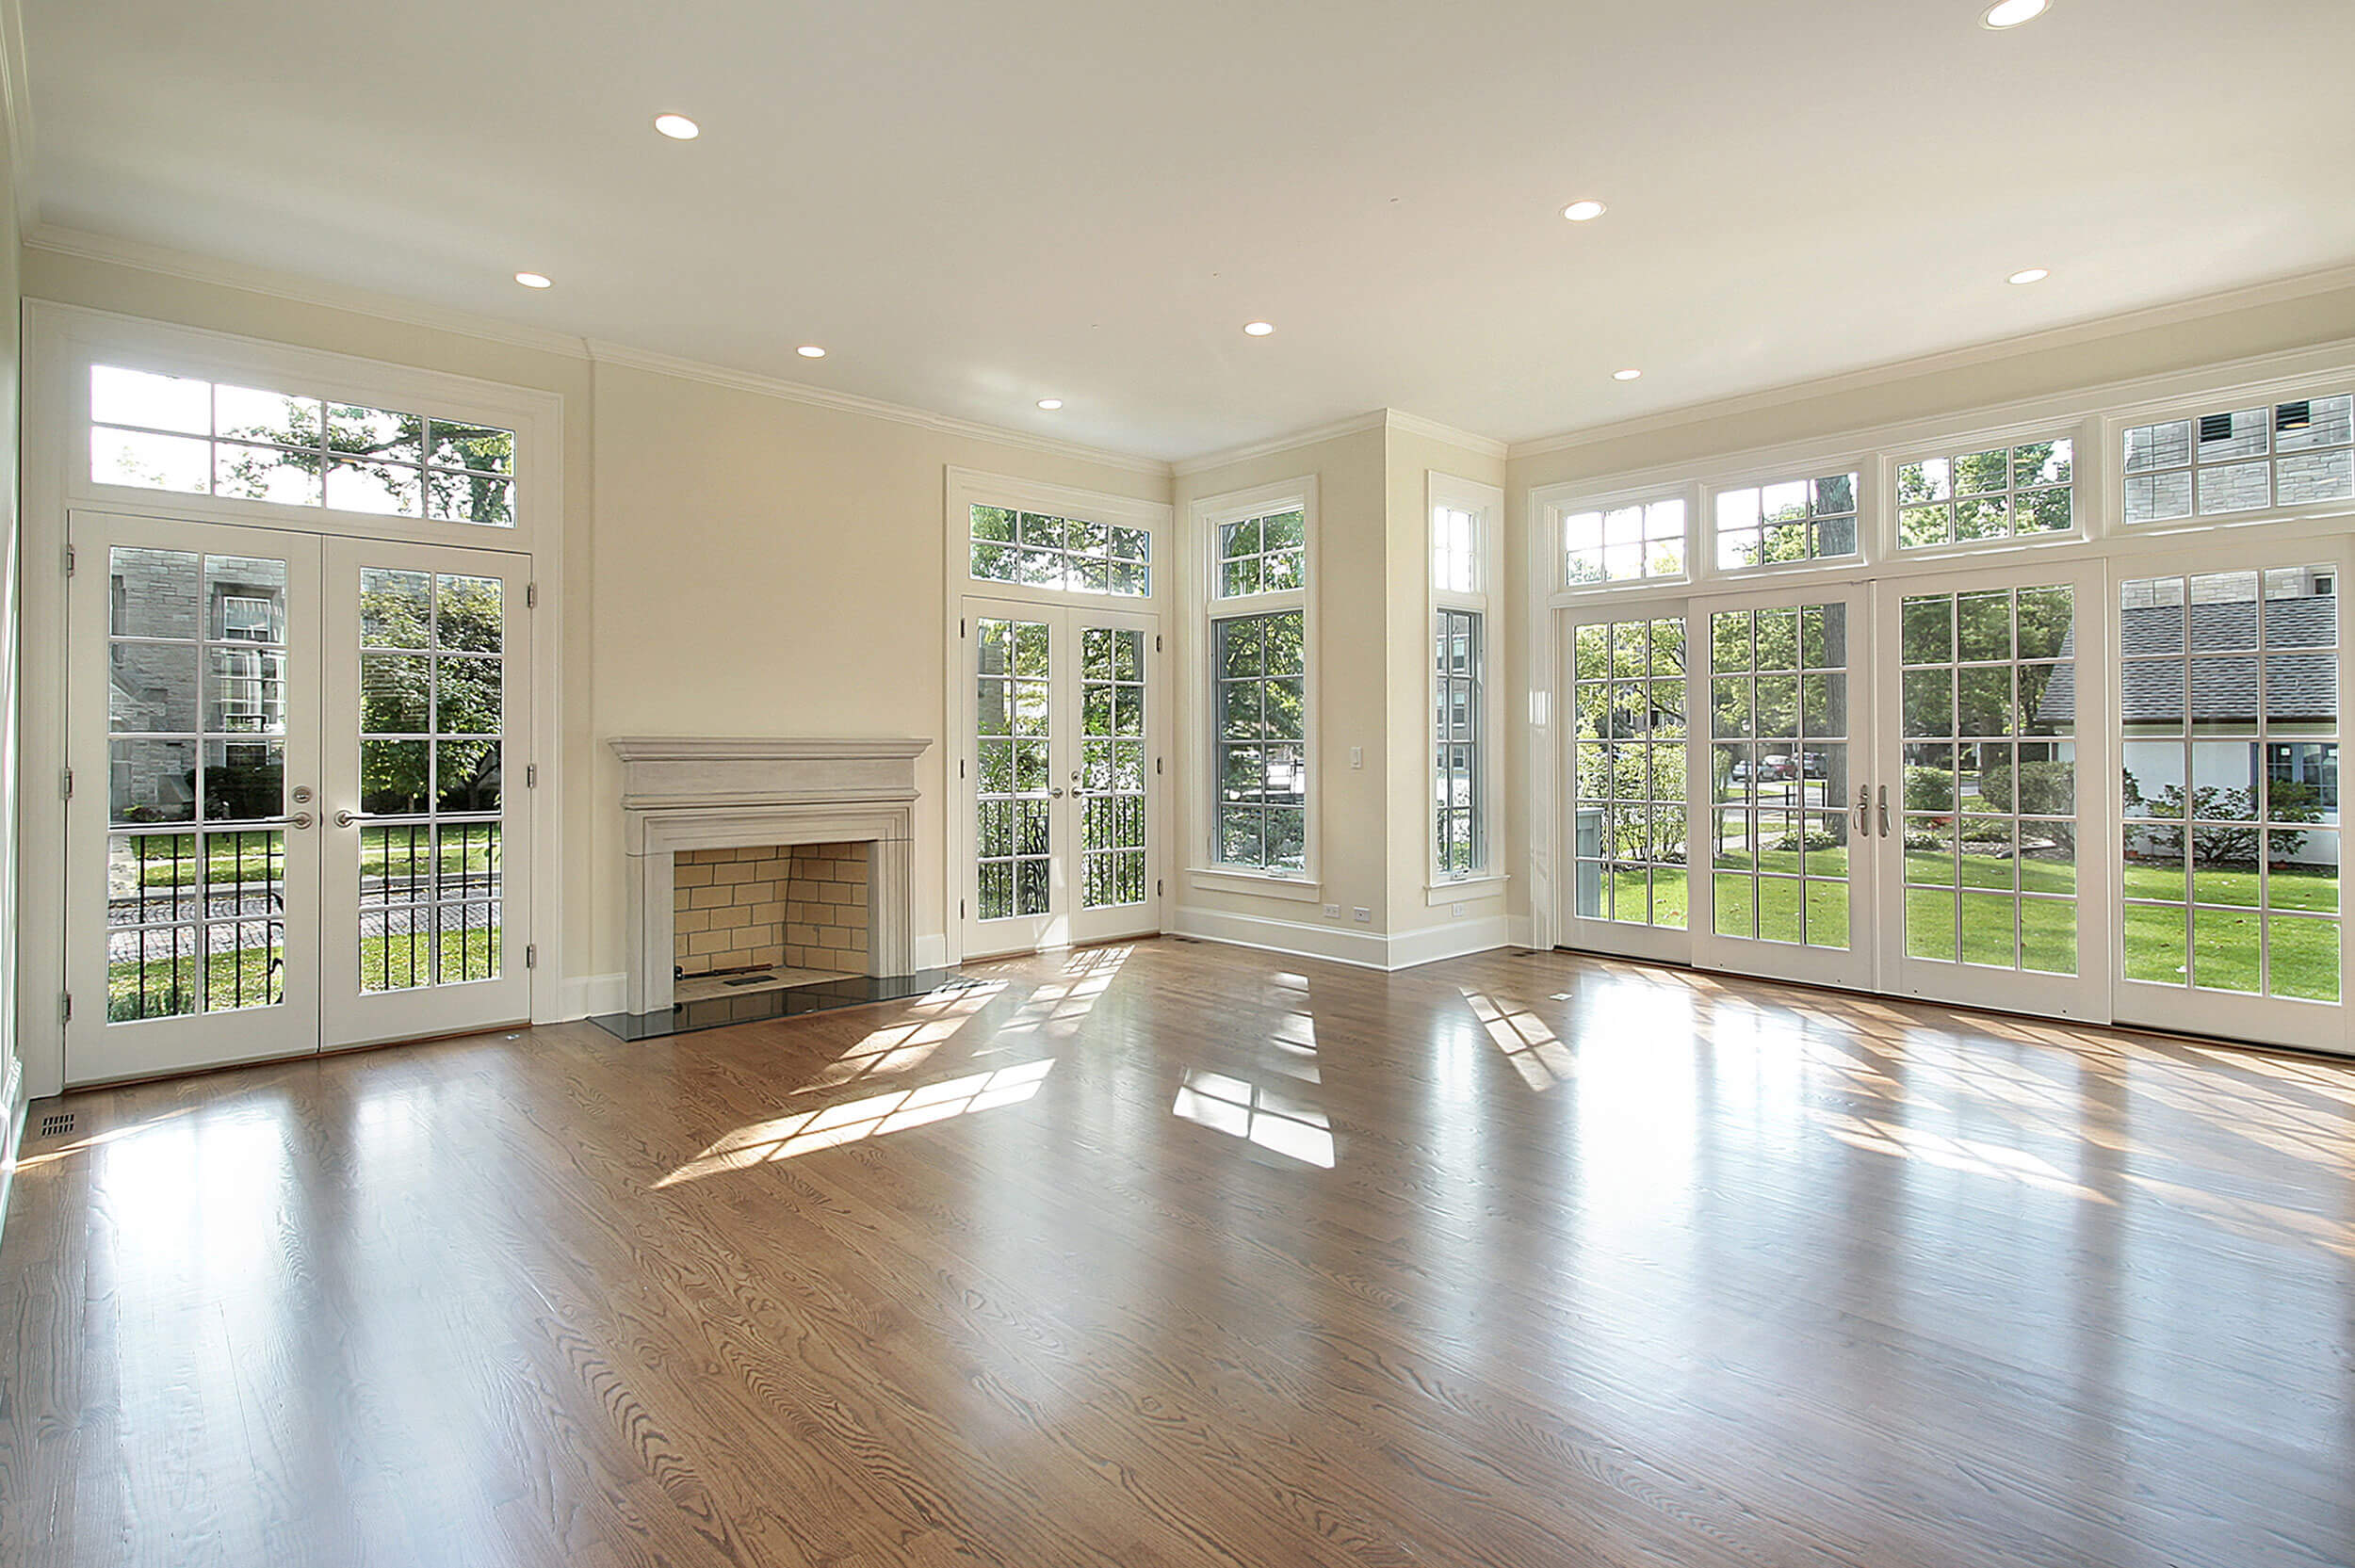 An open, well lit room with a fireplace.